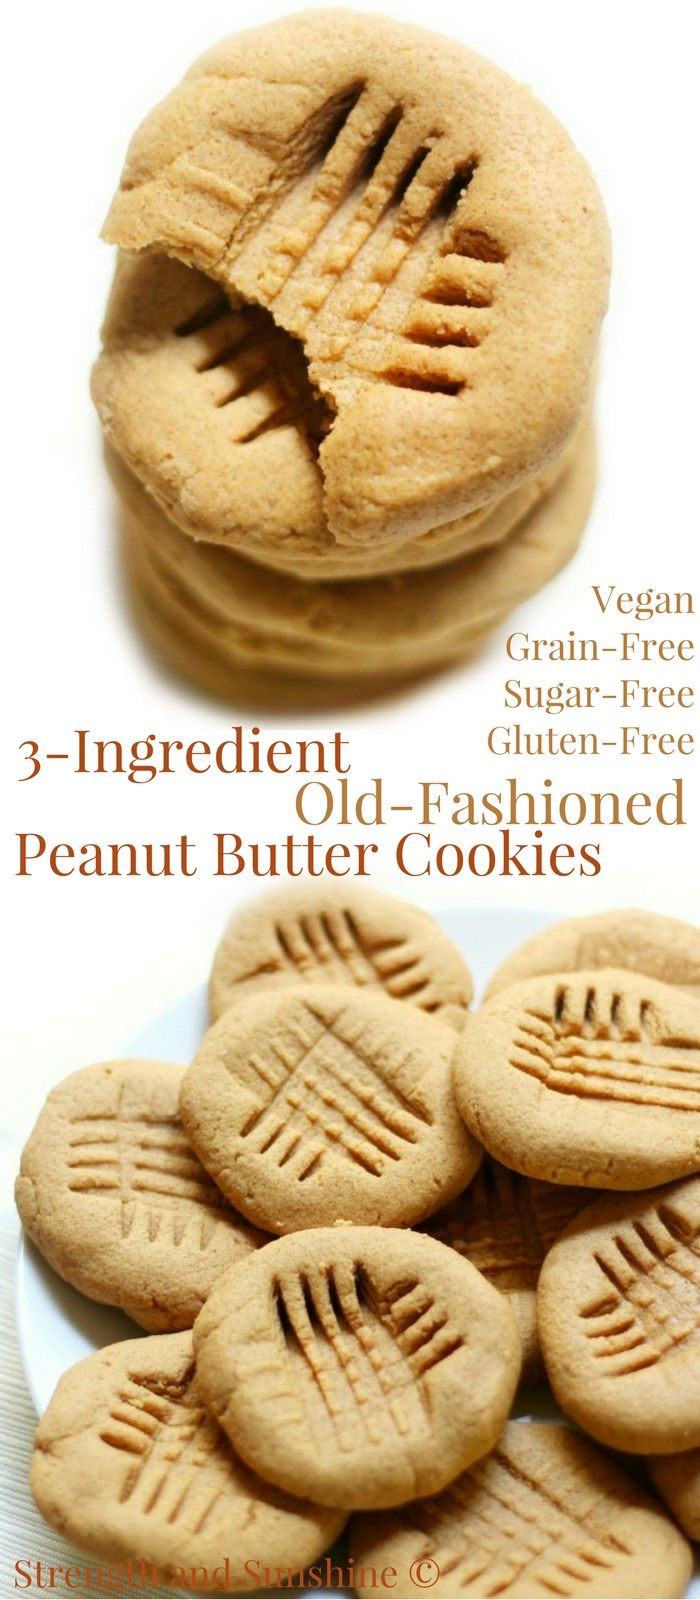 3-Ingredient Old-Fashioned Peanut Butter Cookies (Gluten-Free, Vegan) | Strength and Sunshine @RebeccaGF666 The classic American cookie now with a gluten-free, vegan, grain-free, & sugar-free recipe! These healthy 3-Ingredient Old-Fashioned Peanut Butter Cookies are so quick & easy to make and taste just like grandma's! #glutenfree #vegan #cookies #peanutbuttercookies